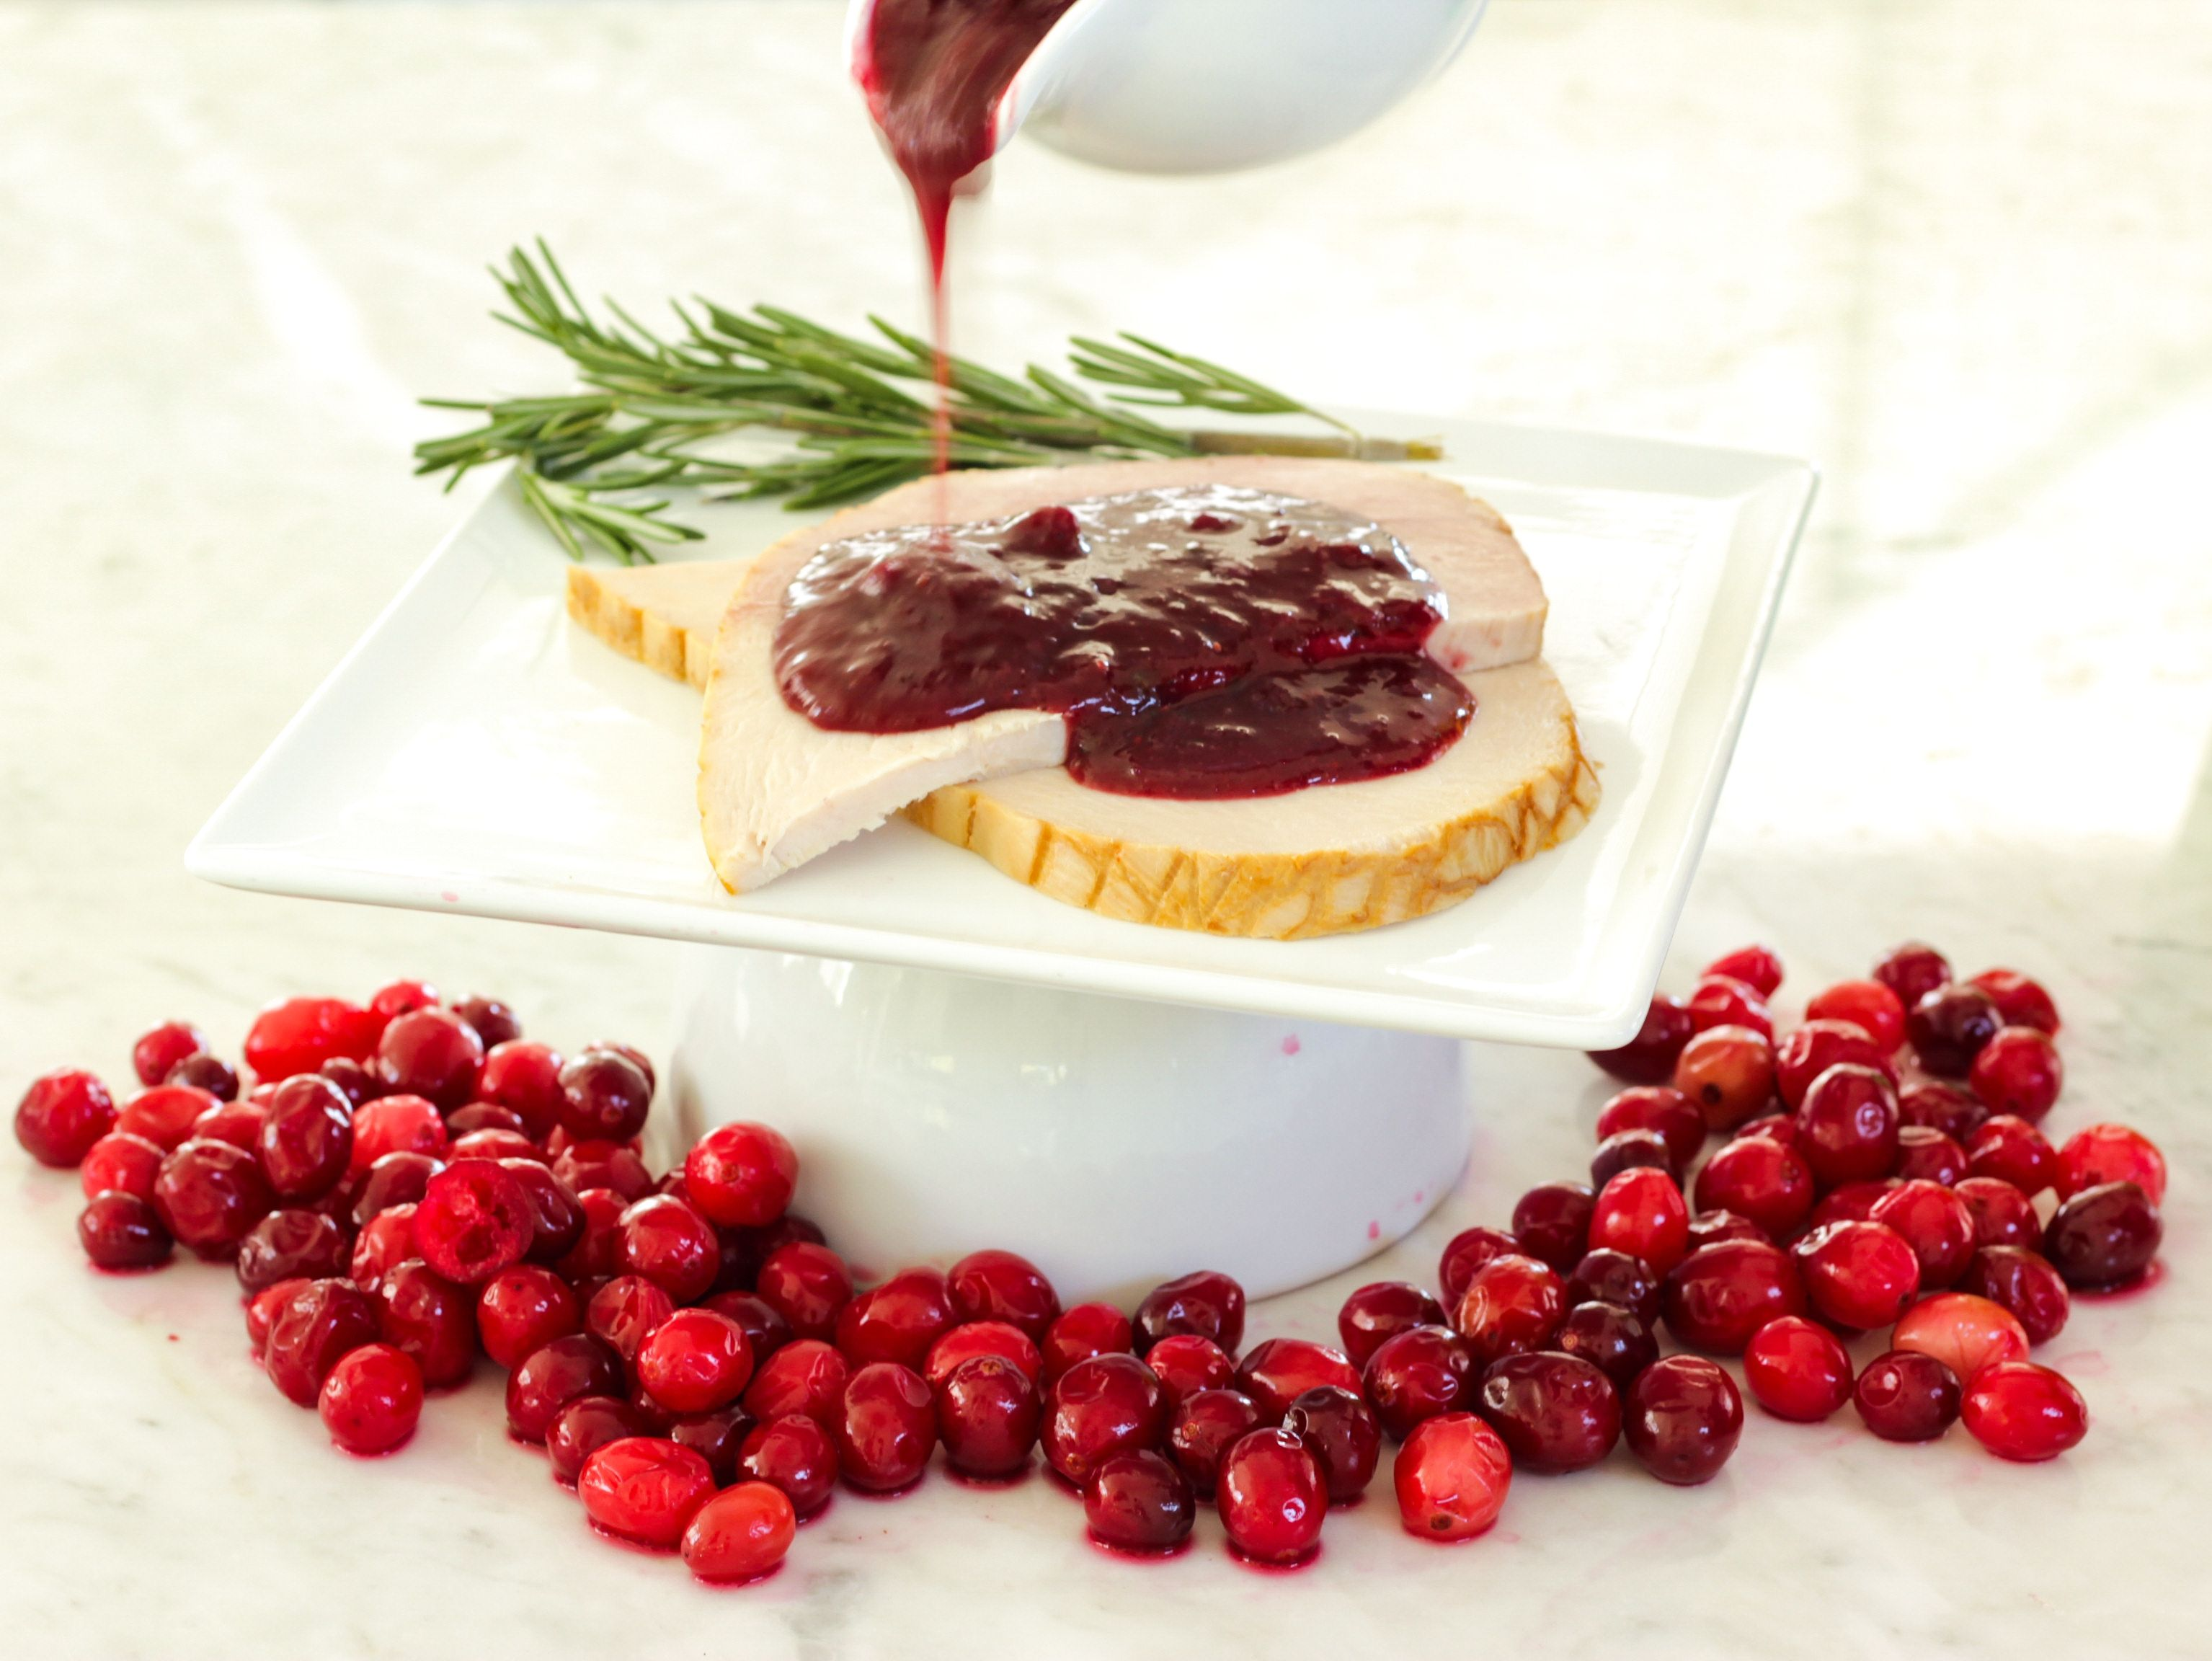 Cranberry Red Wine Sauce Recipe Swerve In 2020 Red Wine Sauce Sugar Free Recipes Cranberry Recipes